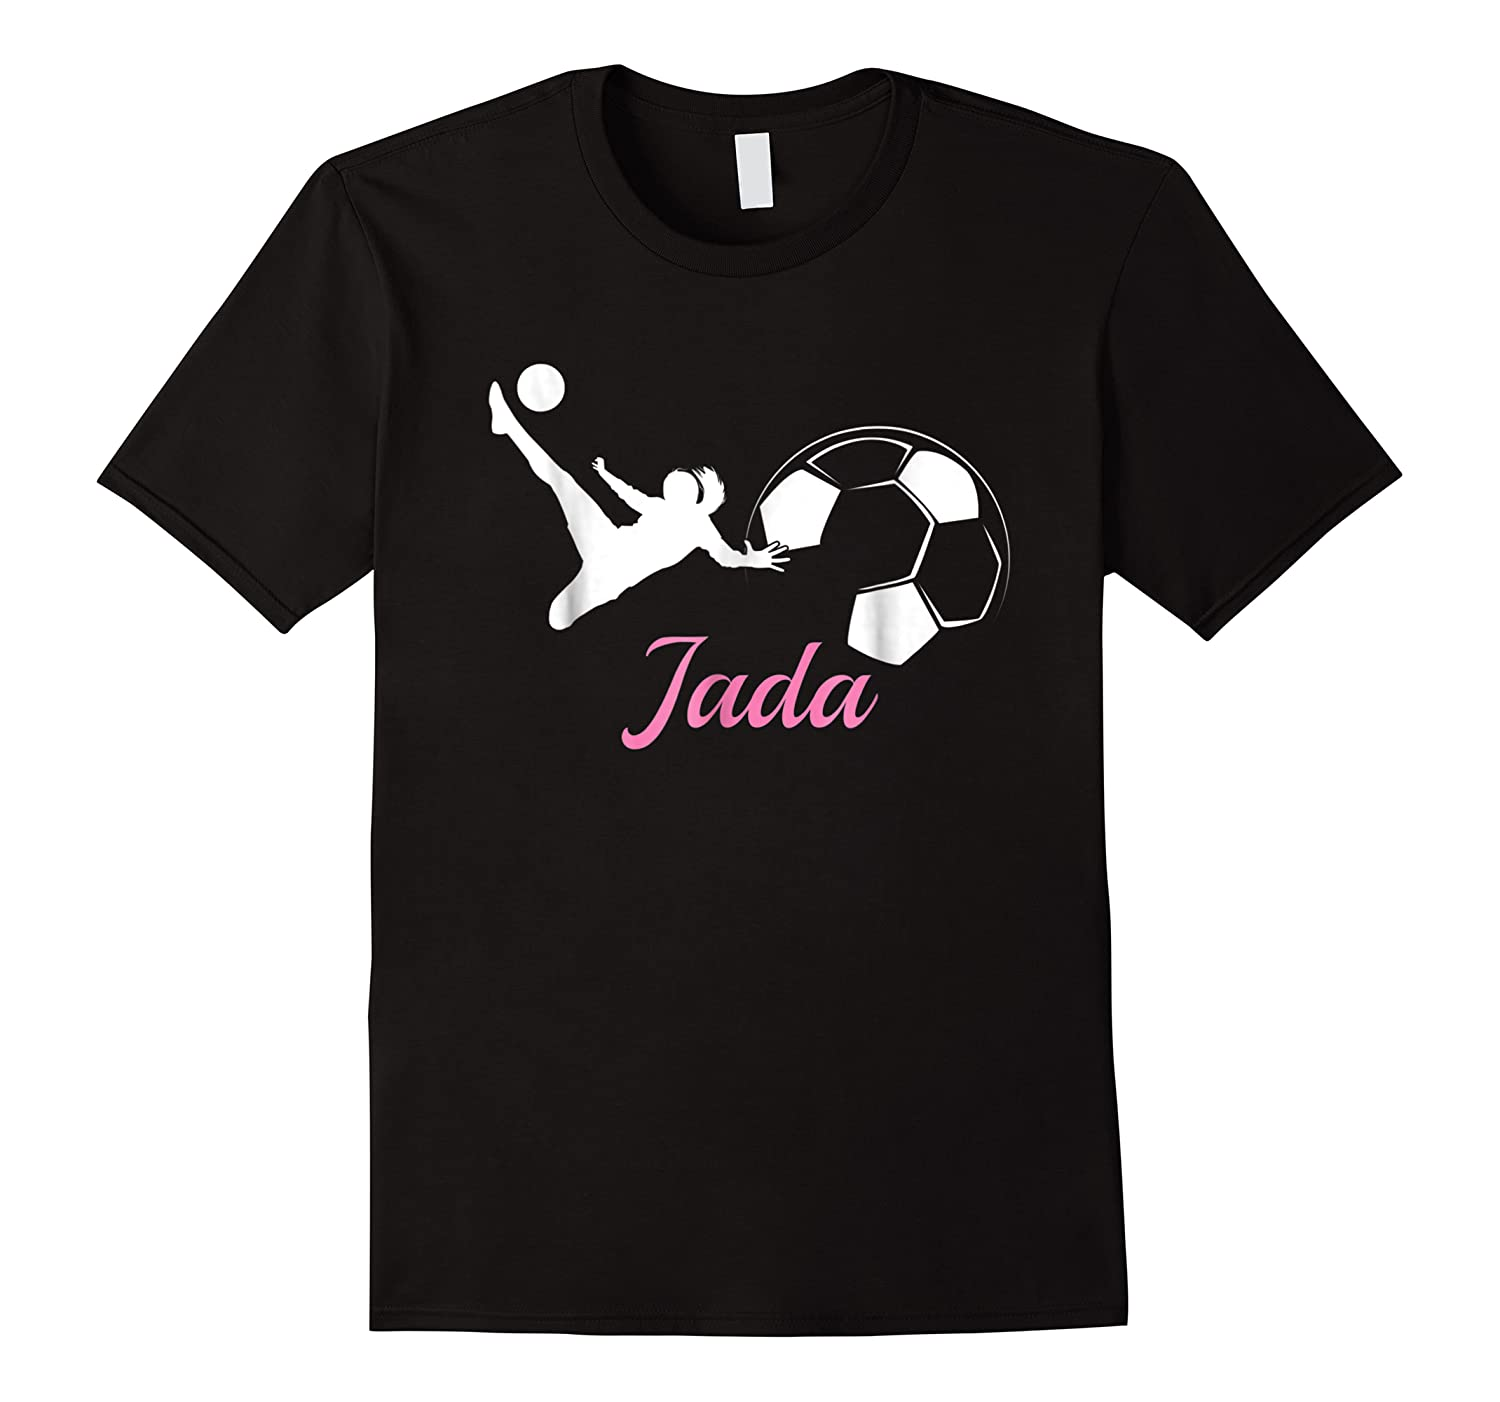 Jada Name Soccer Personalized Gift Shirts